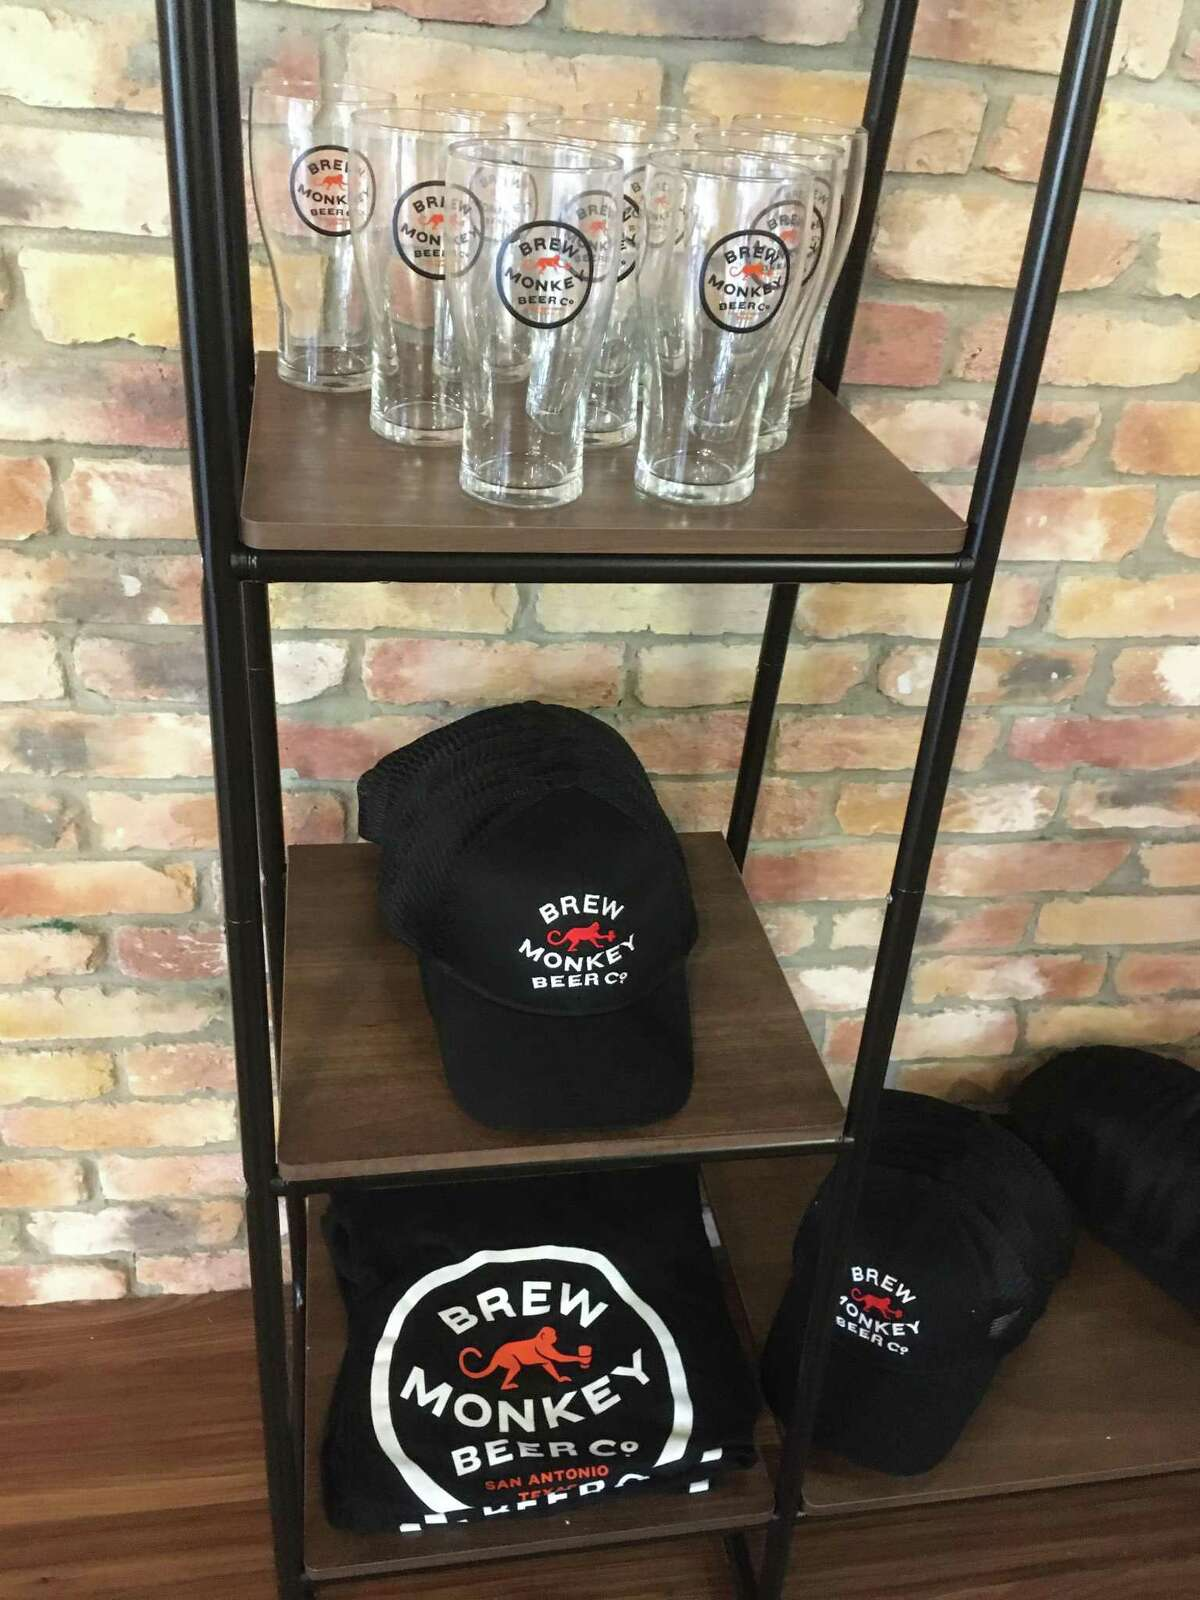 Brew Monkey Beer Co. has a lineup of shirts, glasses, hats and koozies that will be available for sale once it opens Aug. 29.